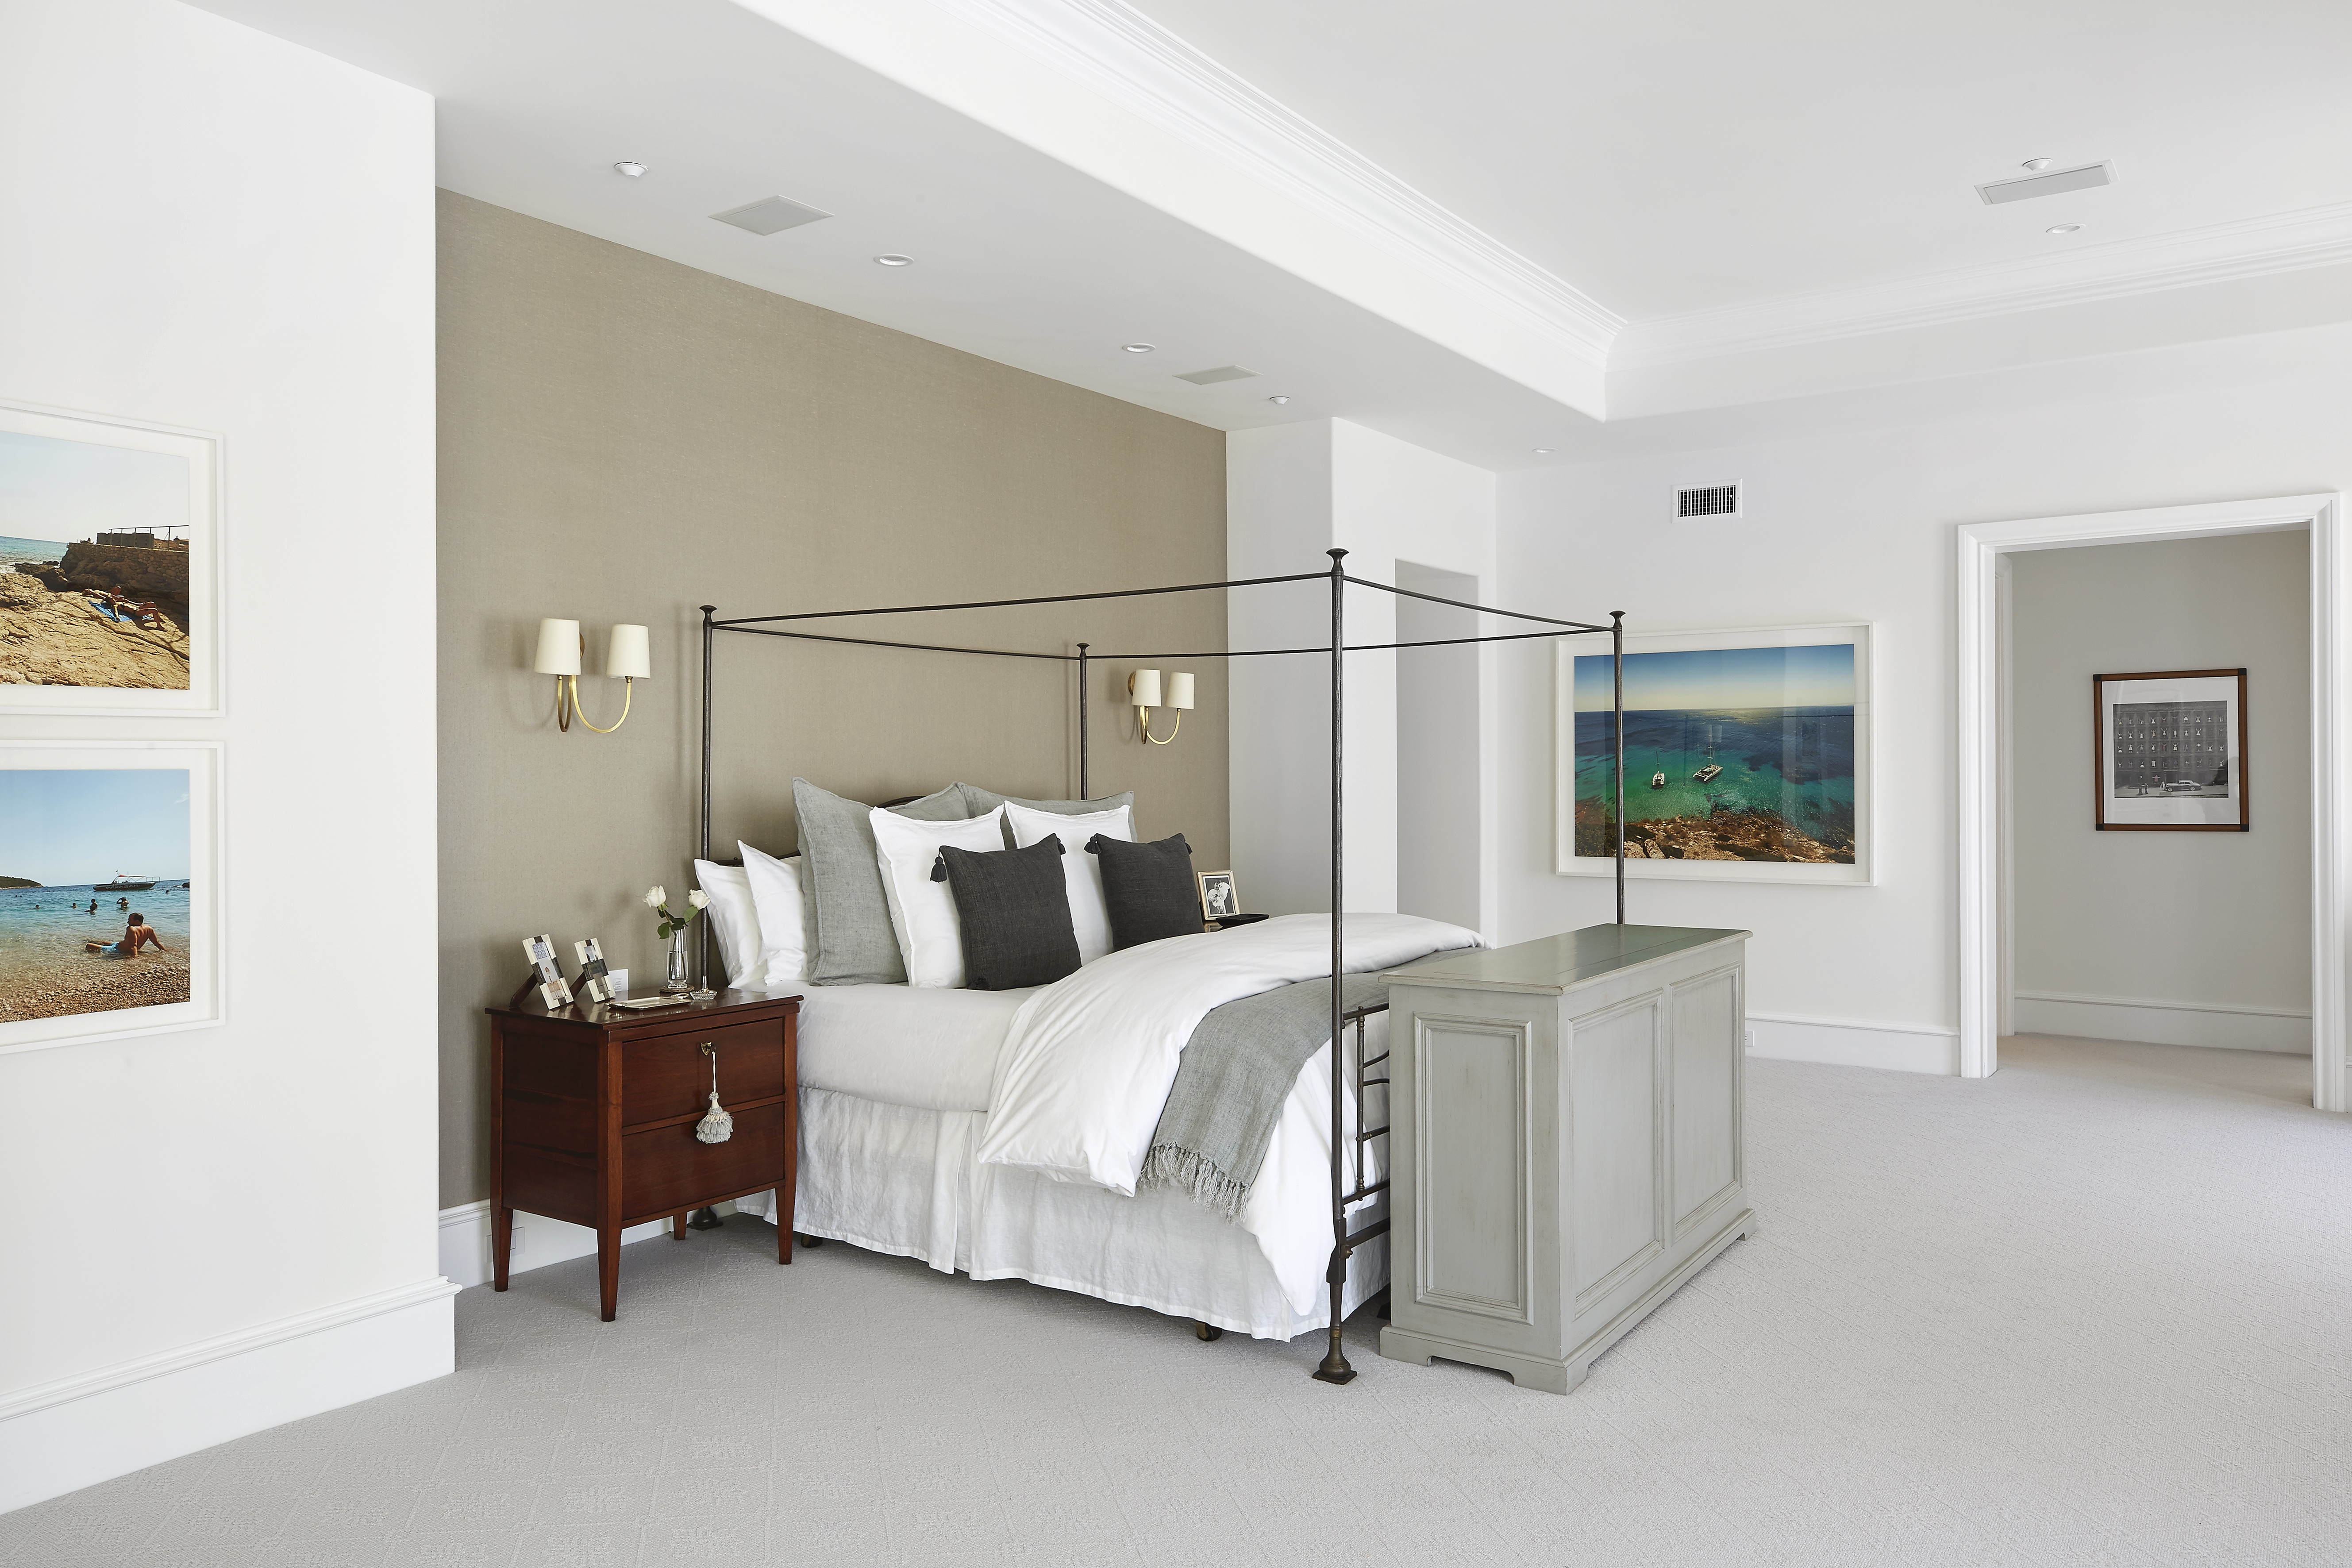 Neutral walls, carpet and bedding makes this master suite a sleep sanctuary